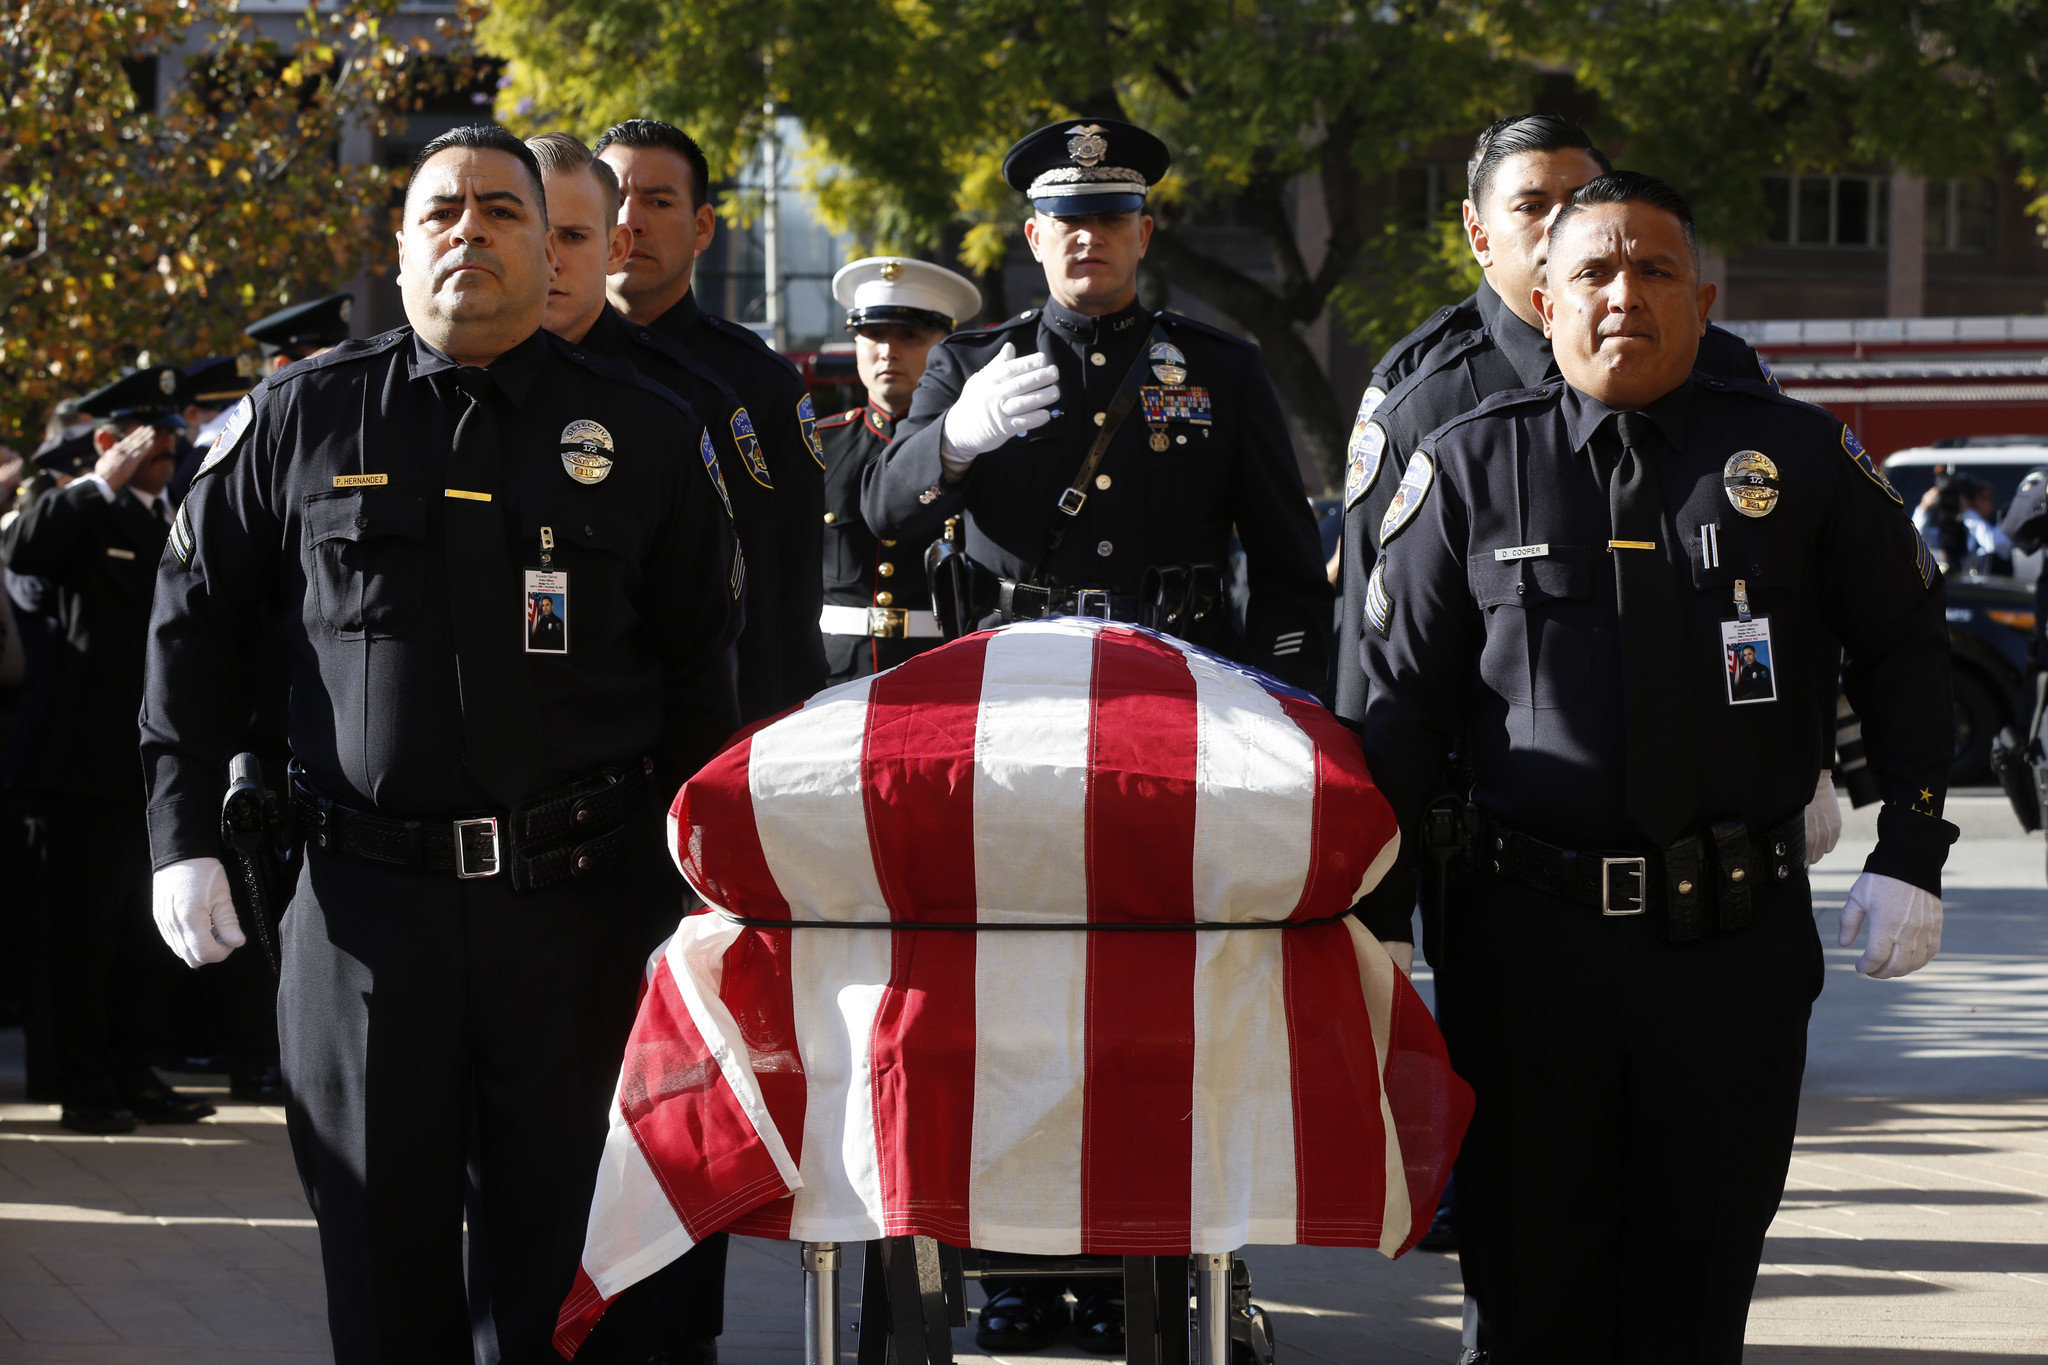 funeral for downey police officer ricardo galvez los angeles times